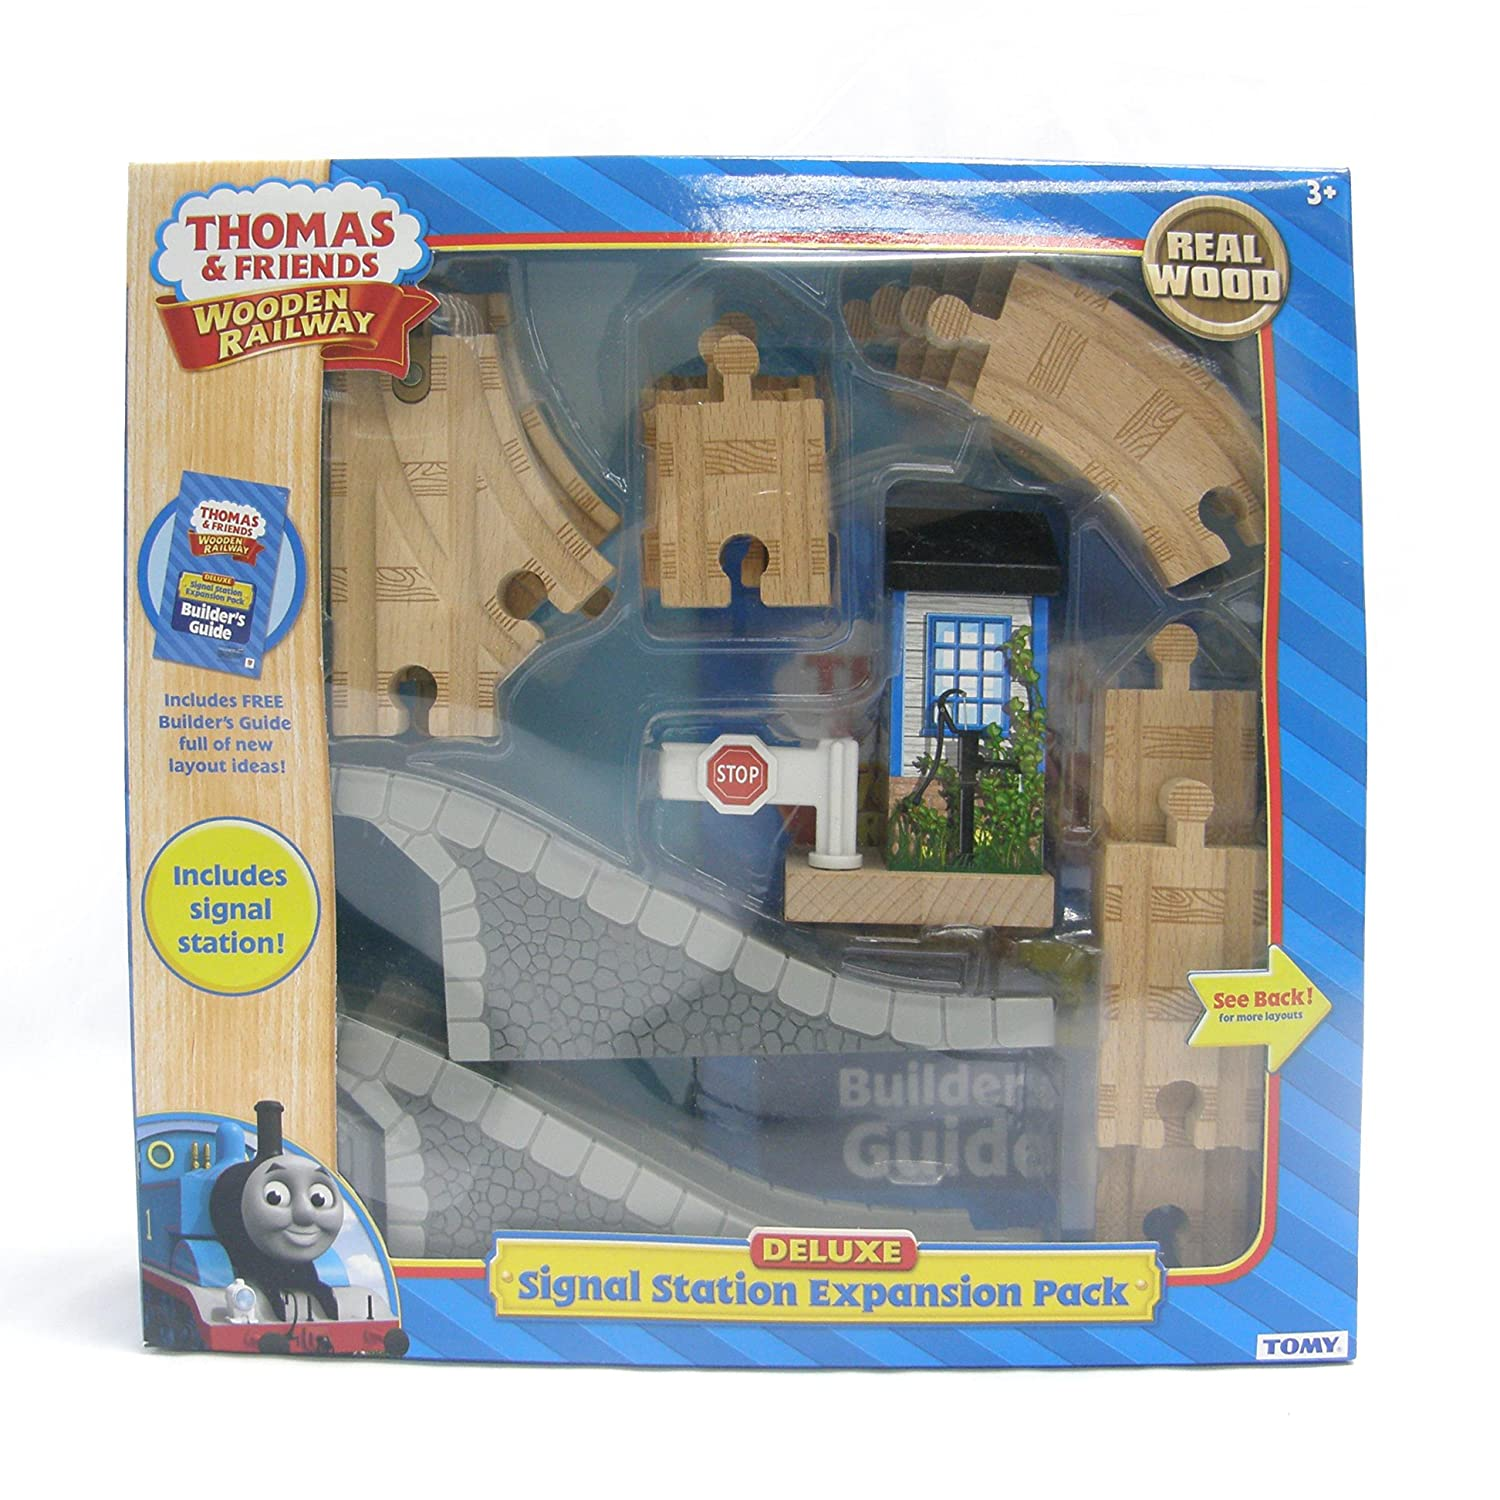 Thomas And Friends Wooden Railway Advanced Figure 8 Set Expansion